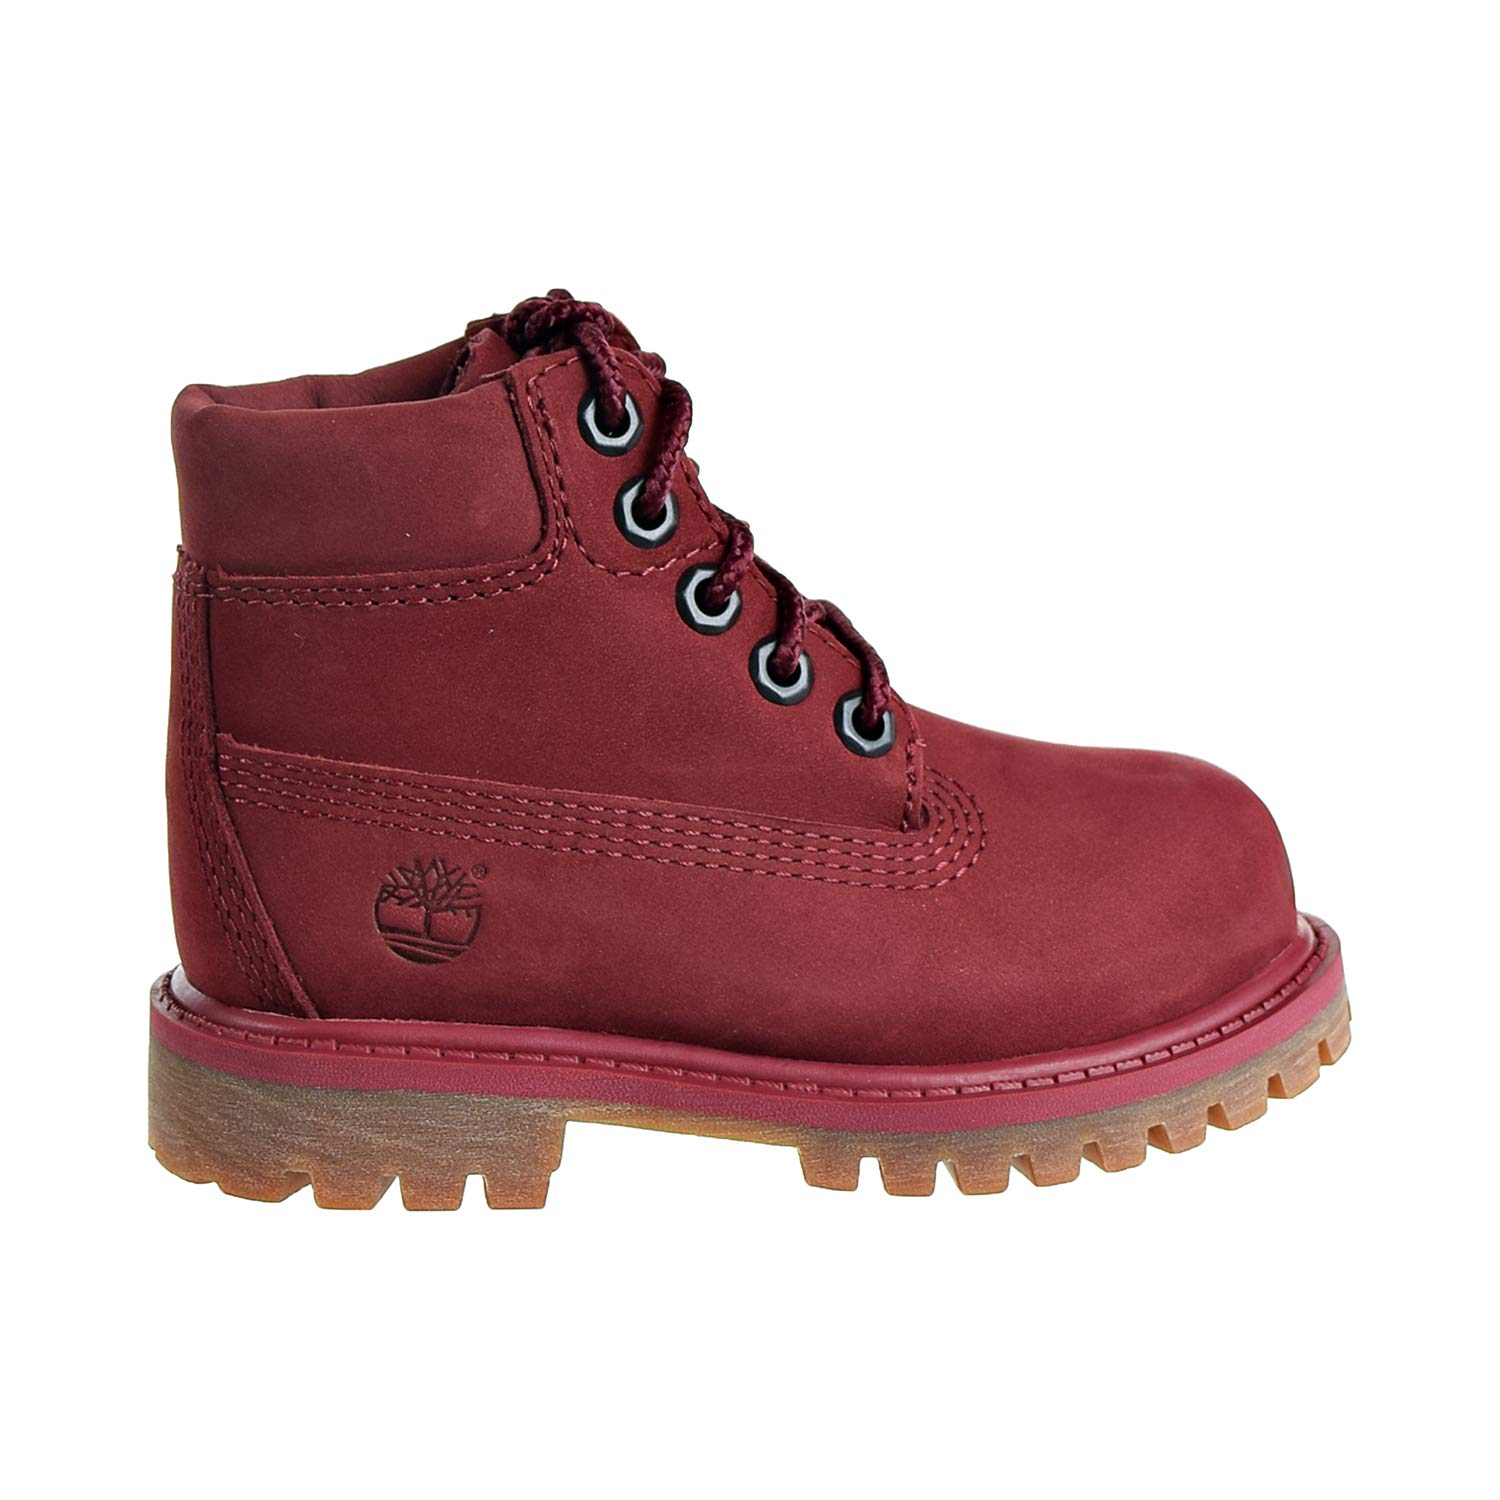 Timberland Premium 6'' Waterproof Boot Toddler's Shoes Burgundy tb0a1vgc (4 M US)